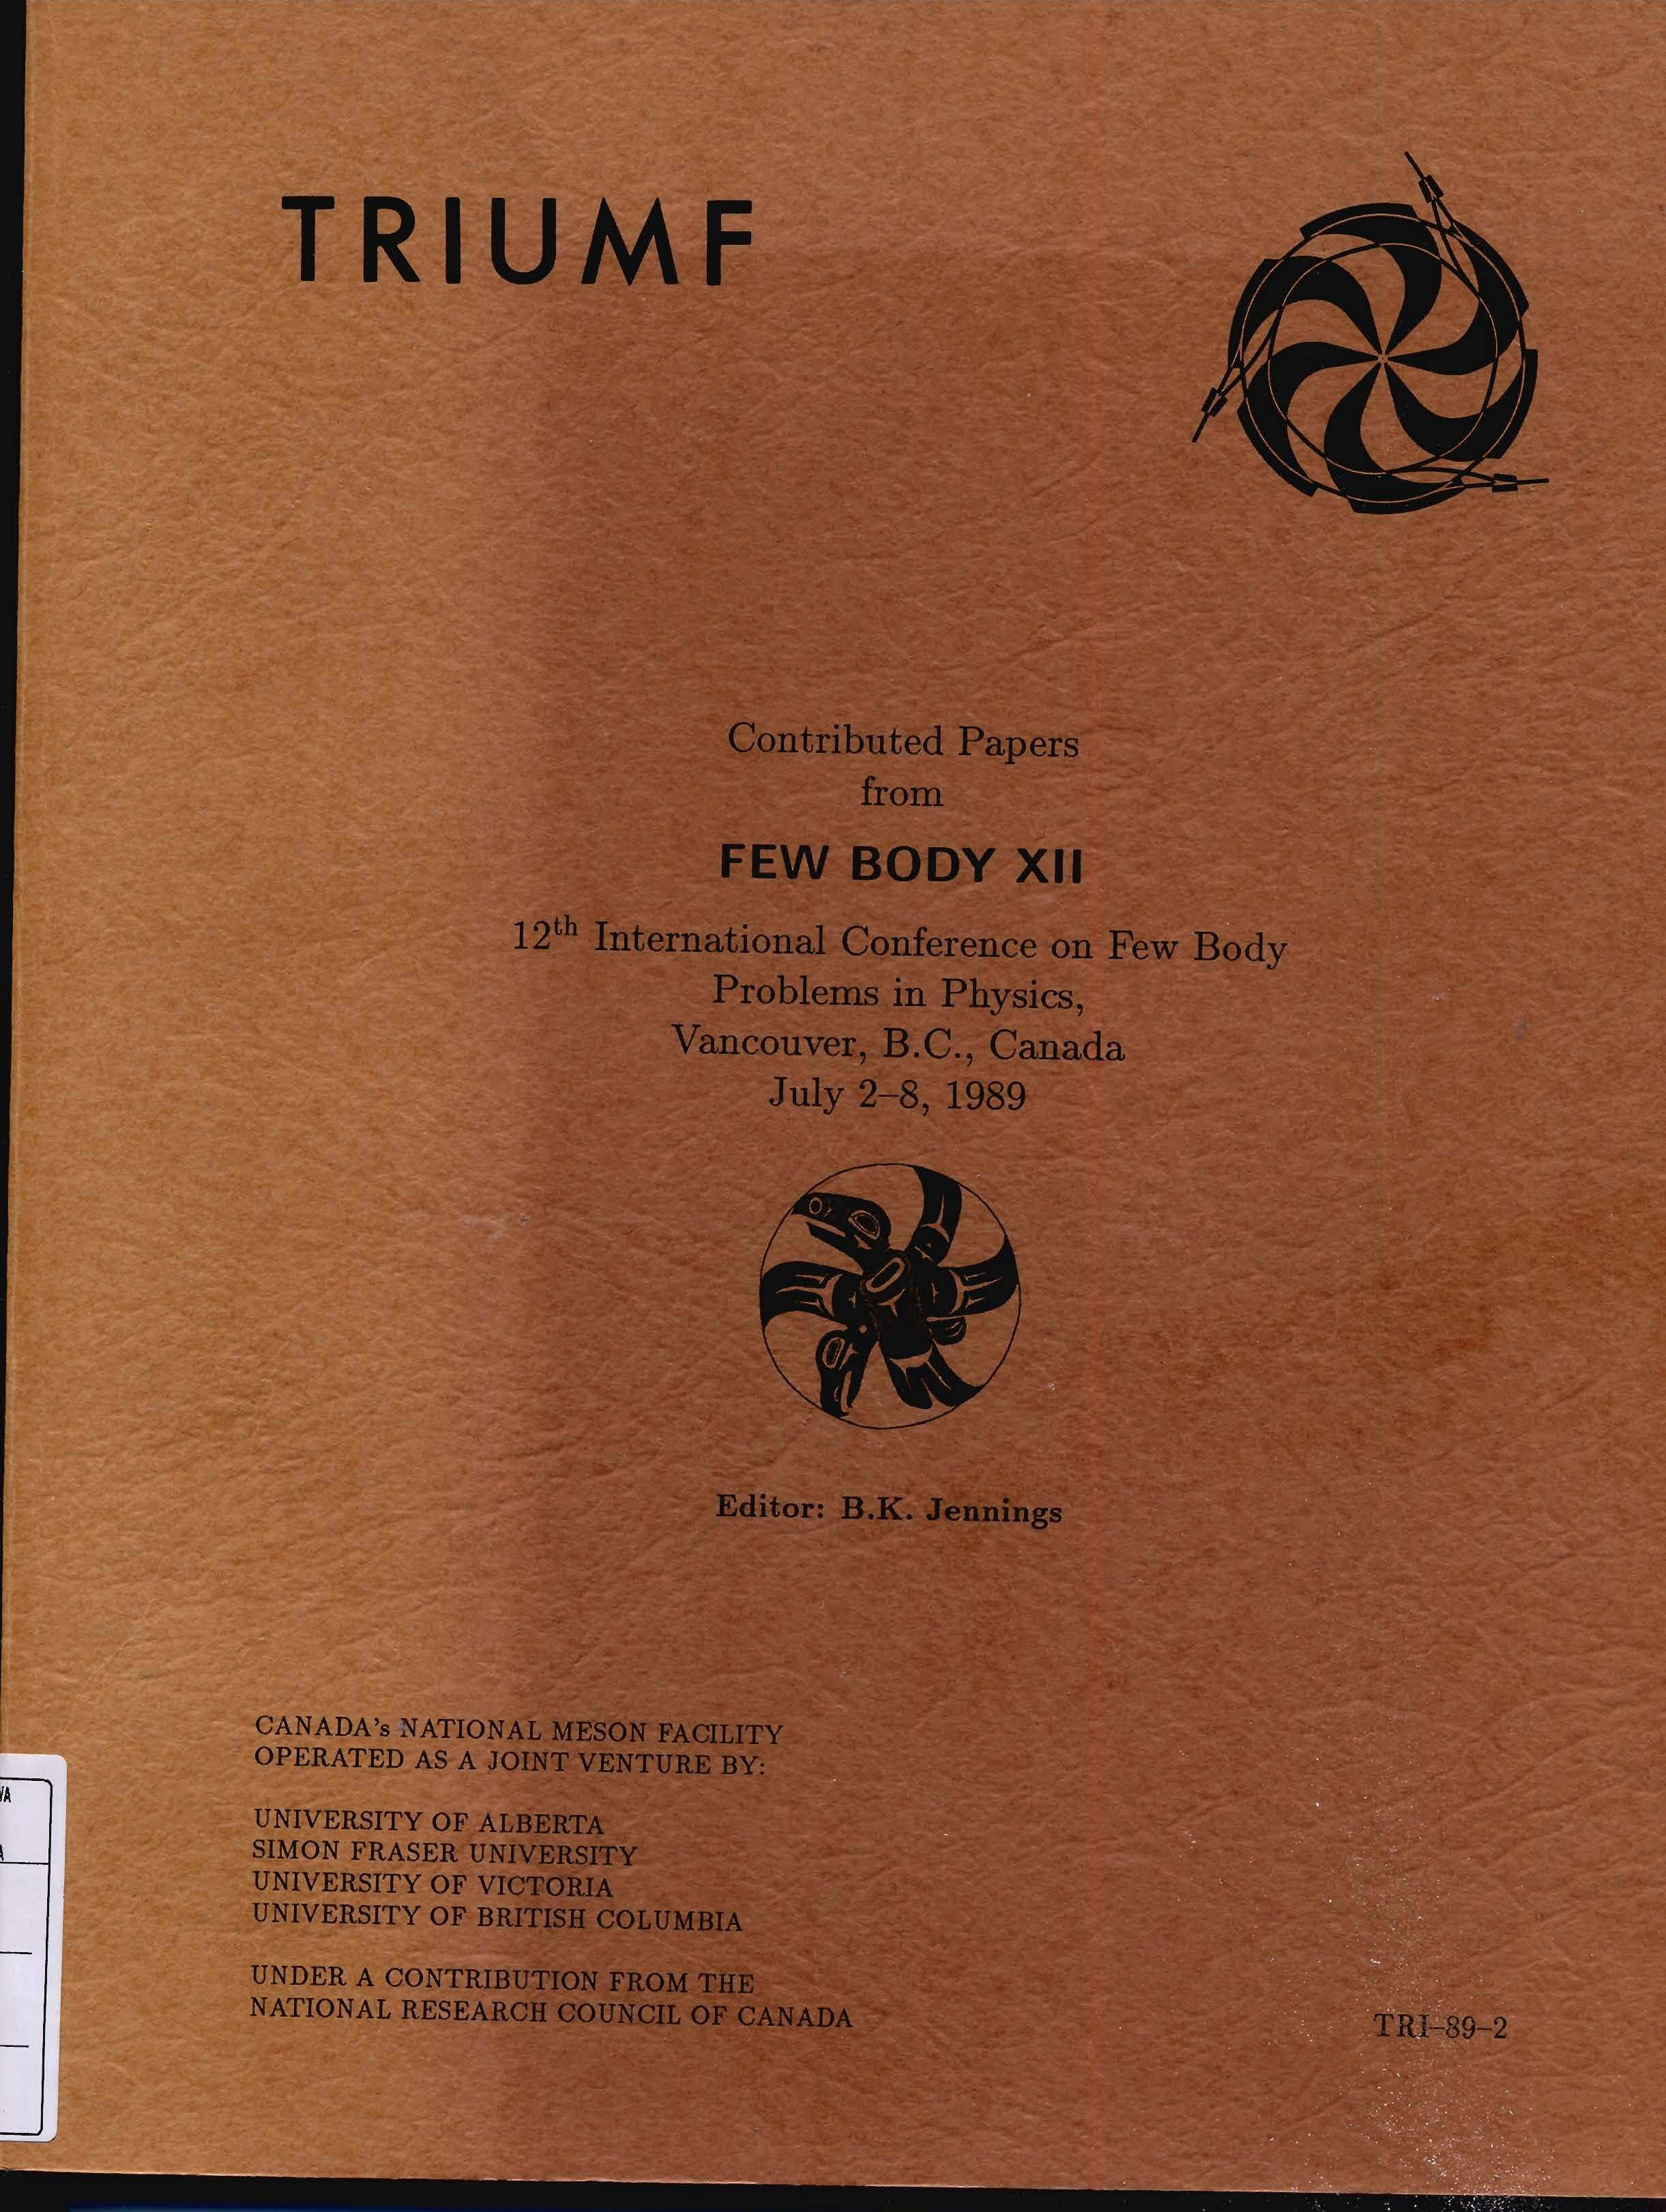 Contributed Papers from Few Body XII